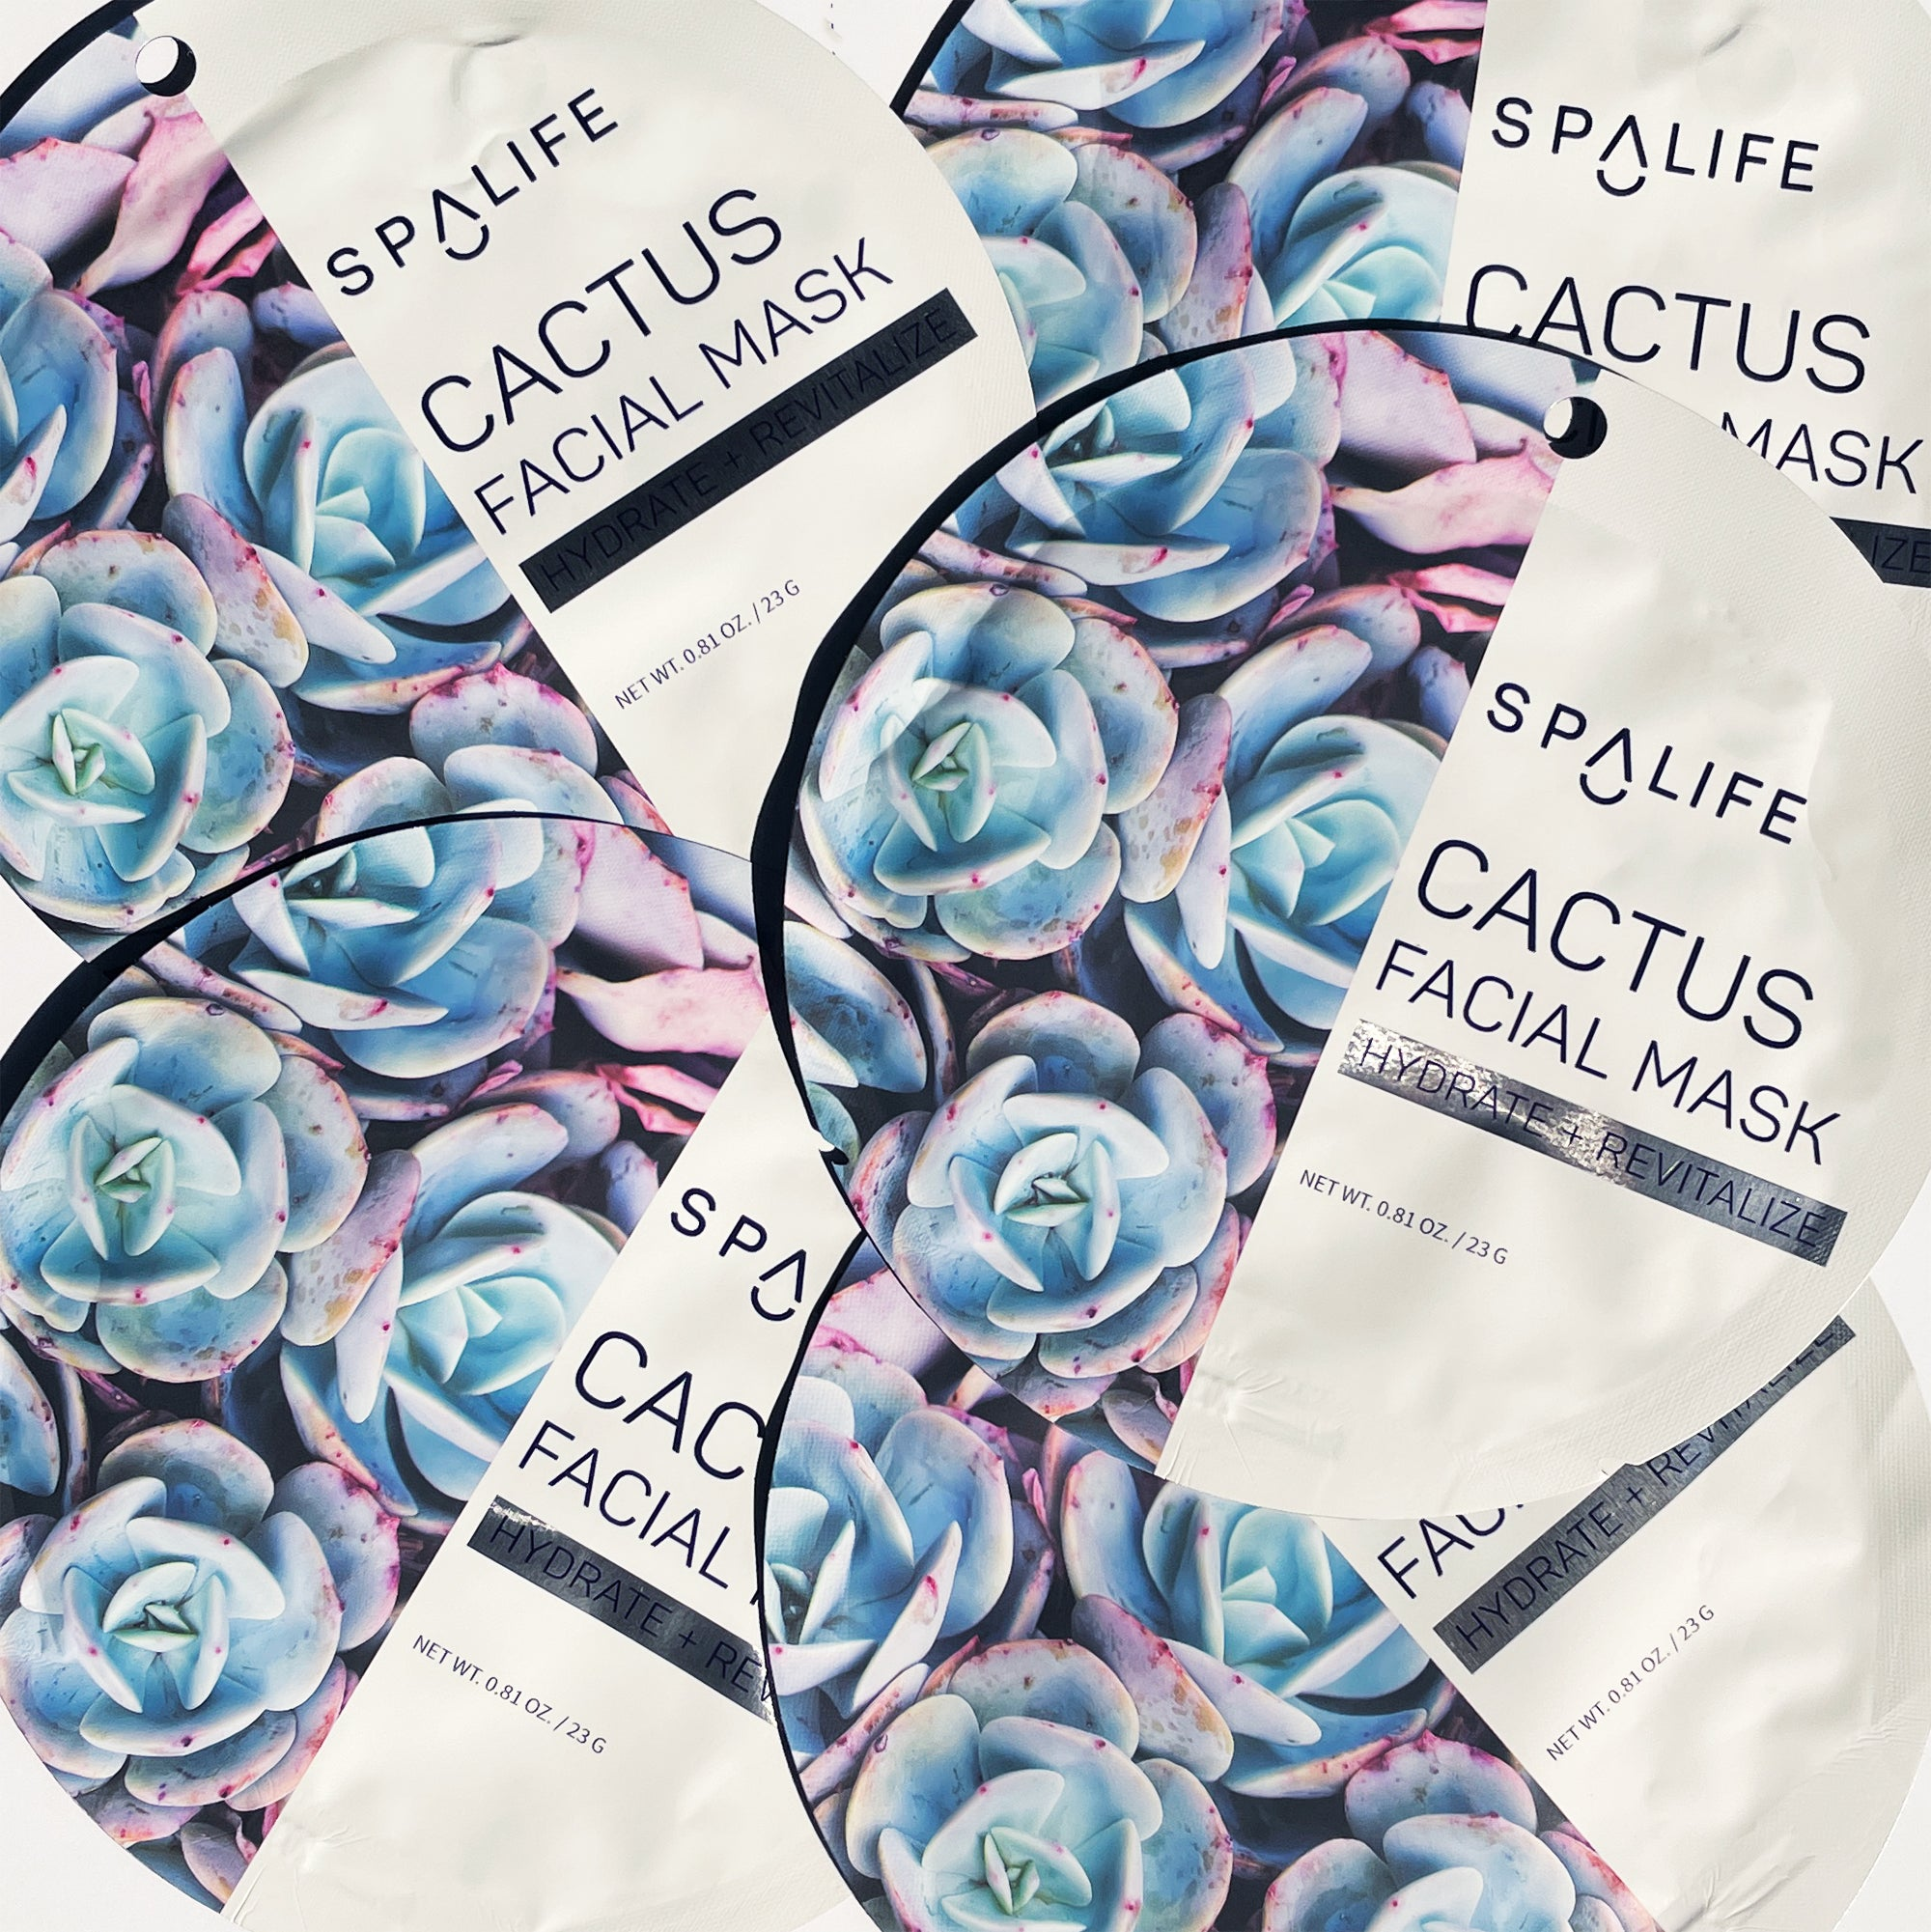 Cactus Facial Mask - Hydrate & Revitalize